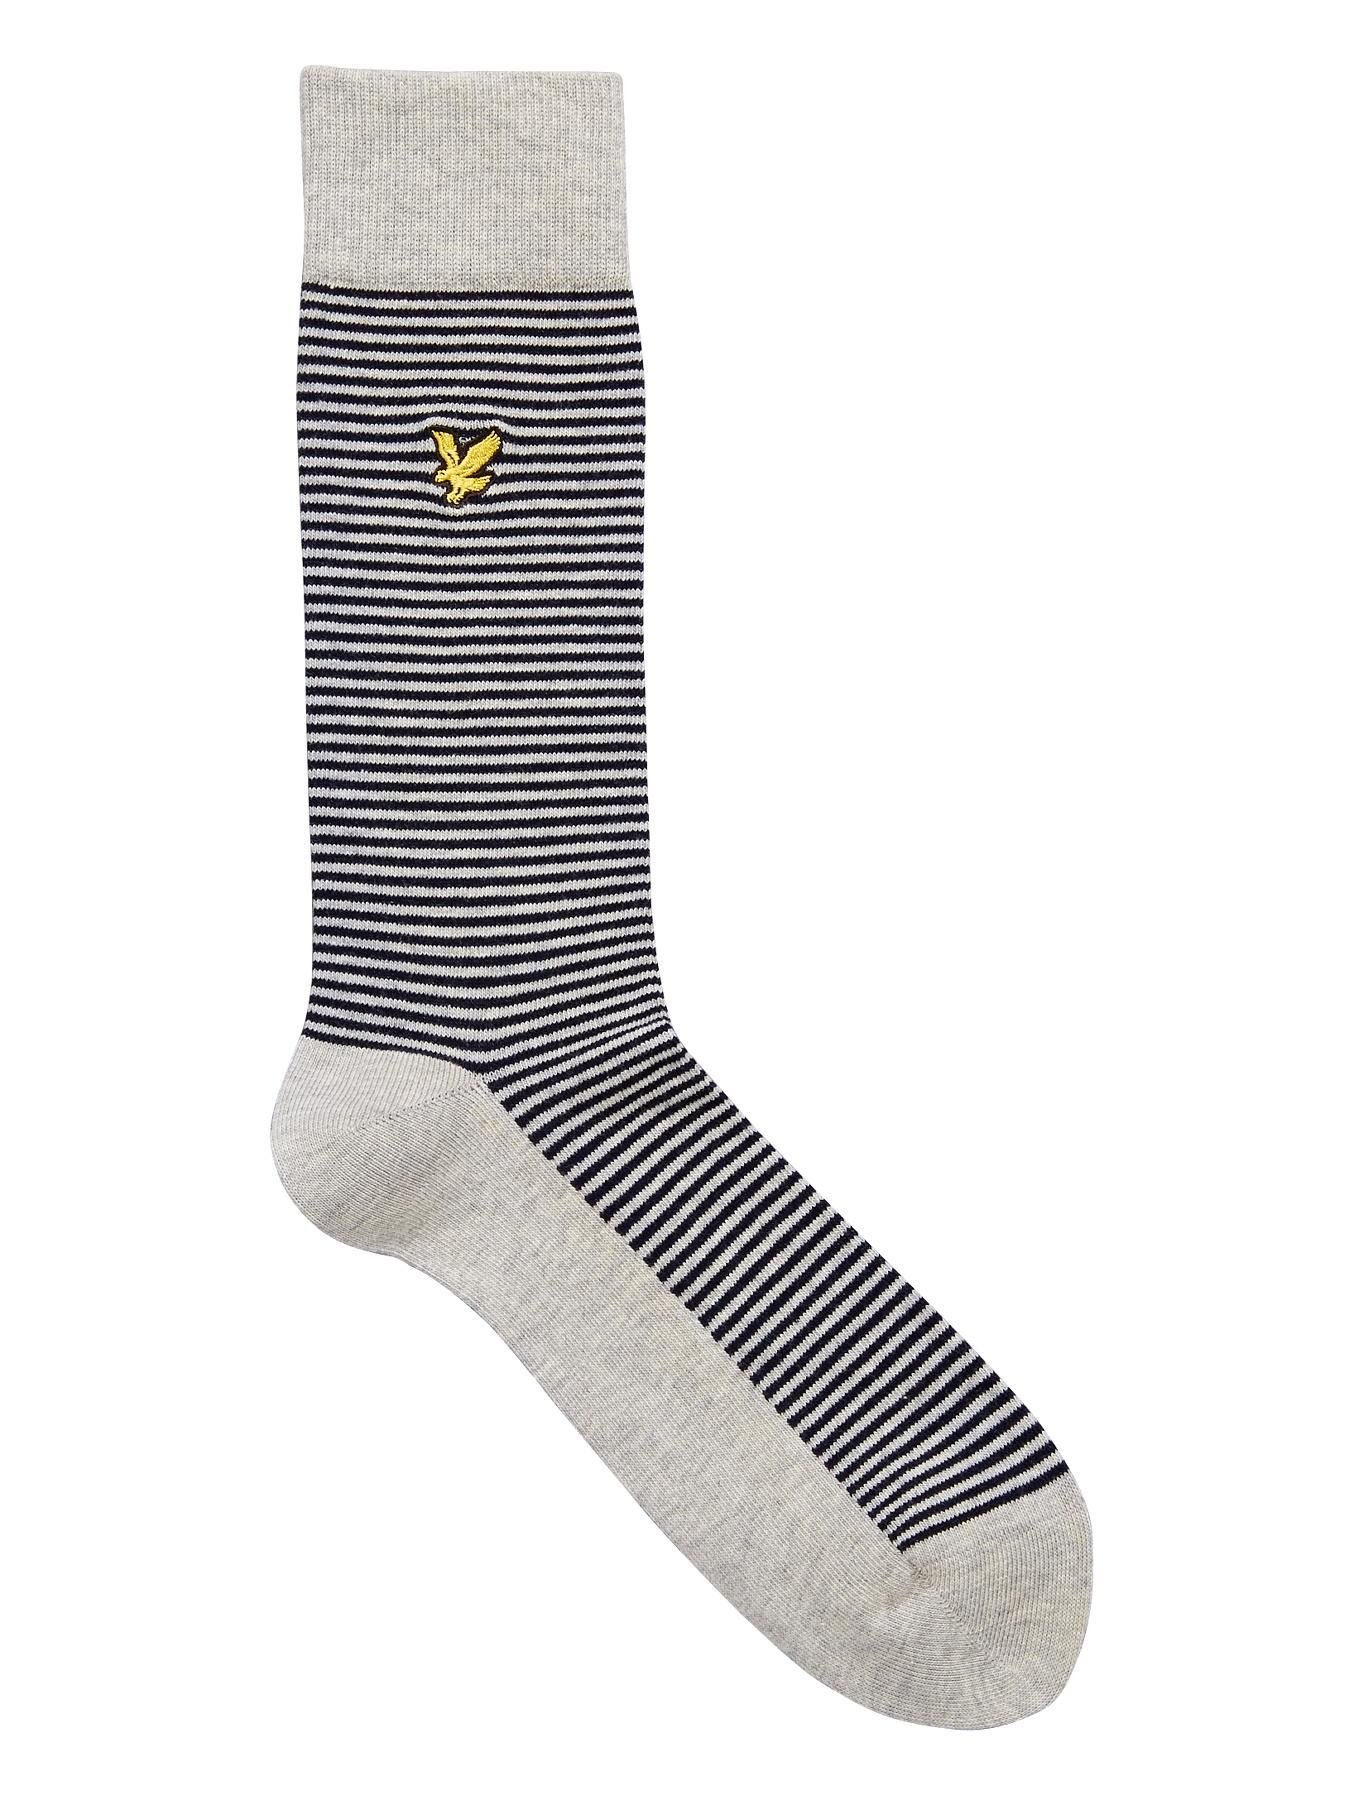 Lyle & Scott Mens Stripe Socks - Navy, Navy